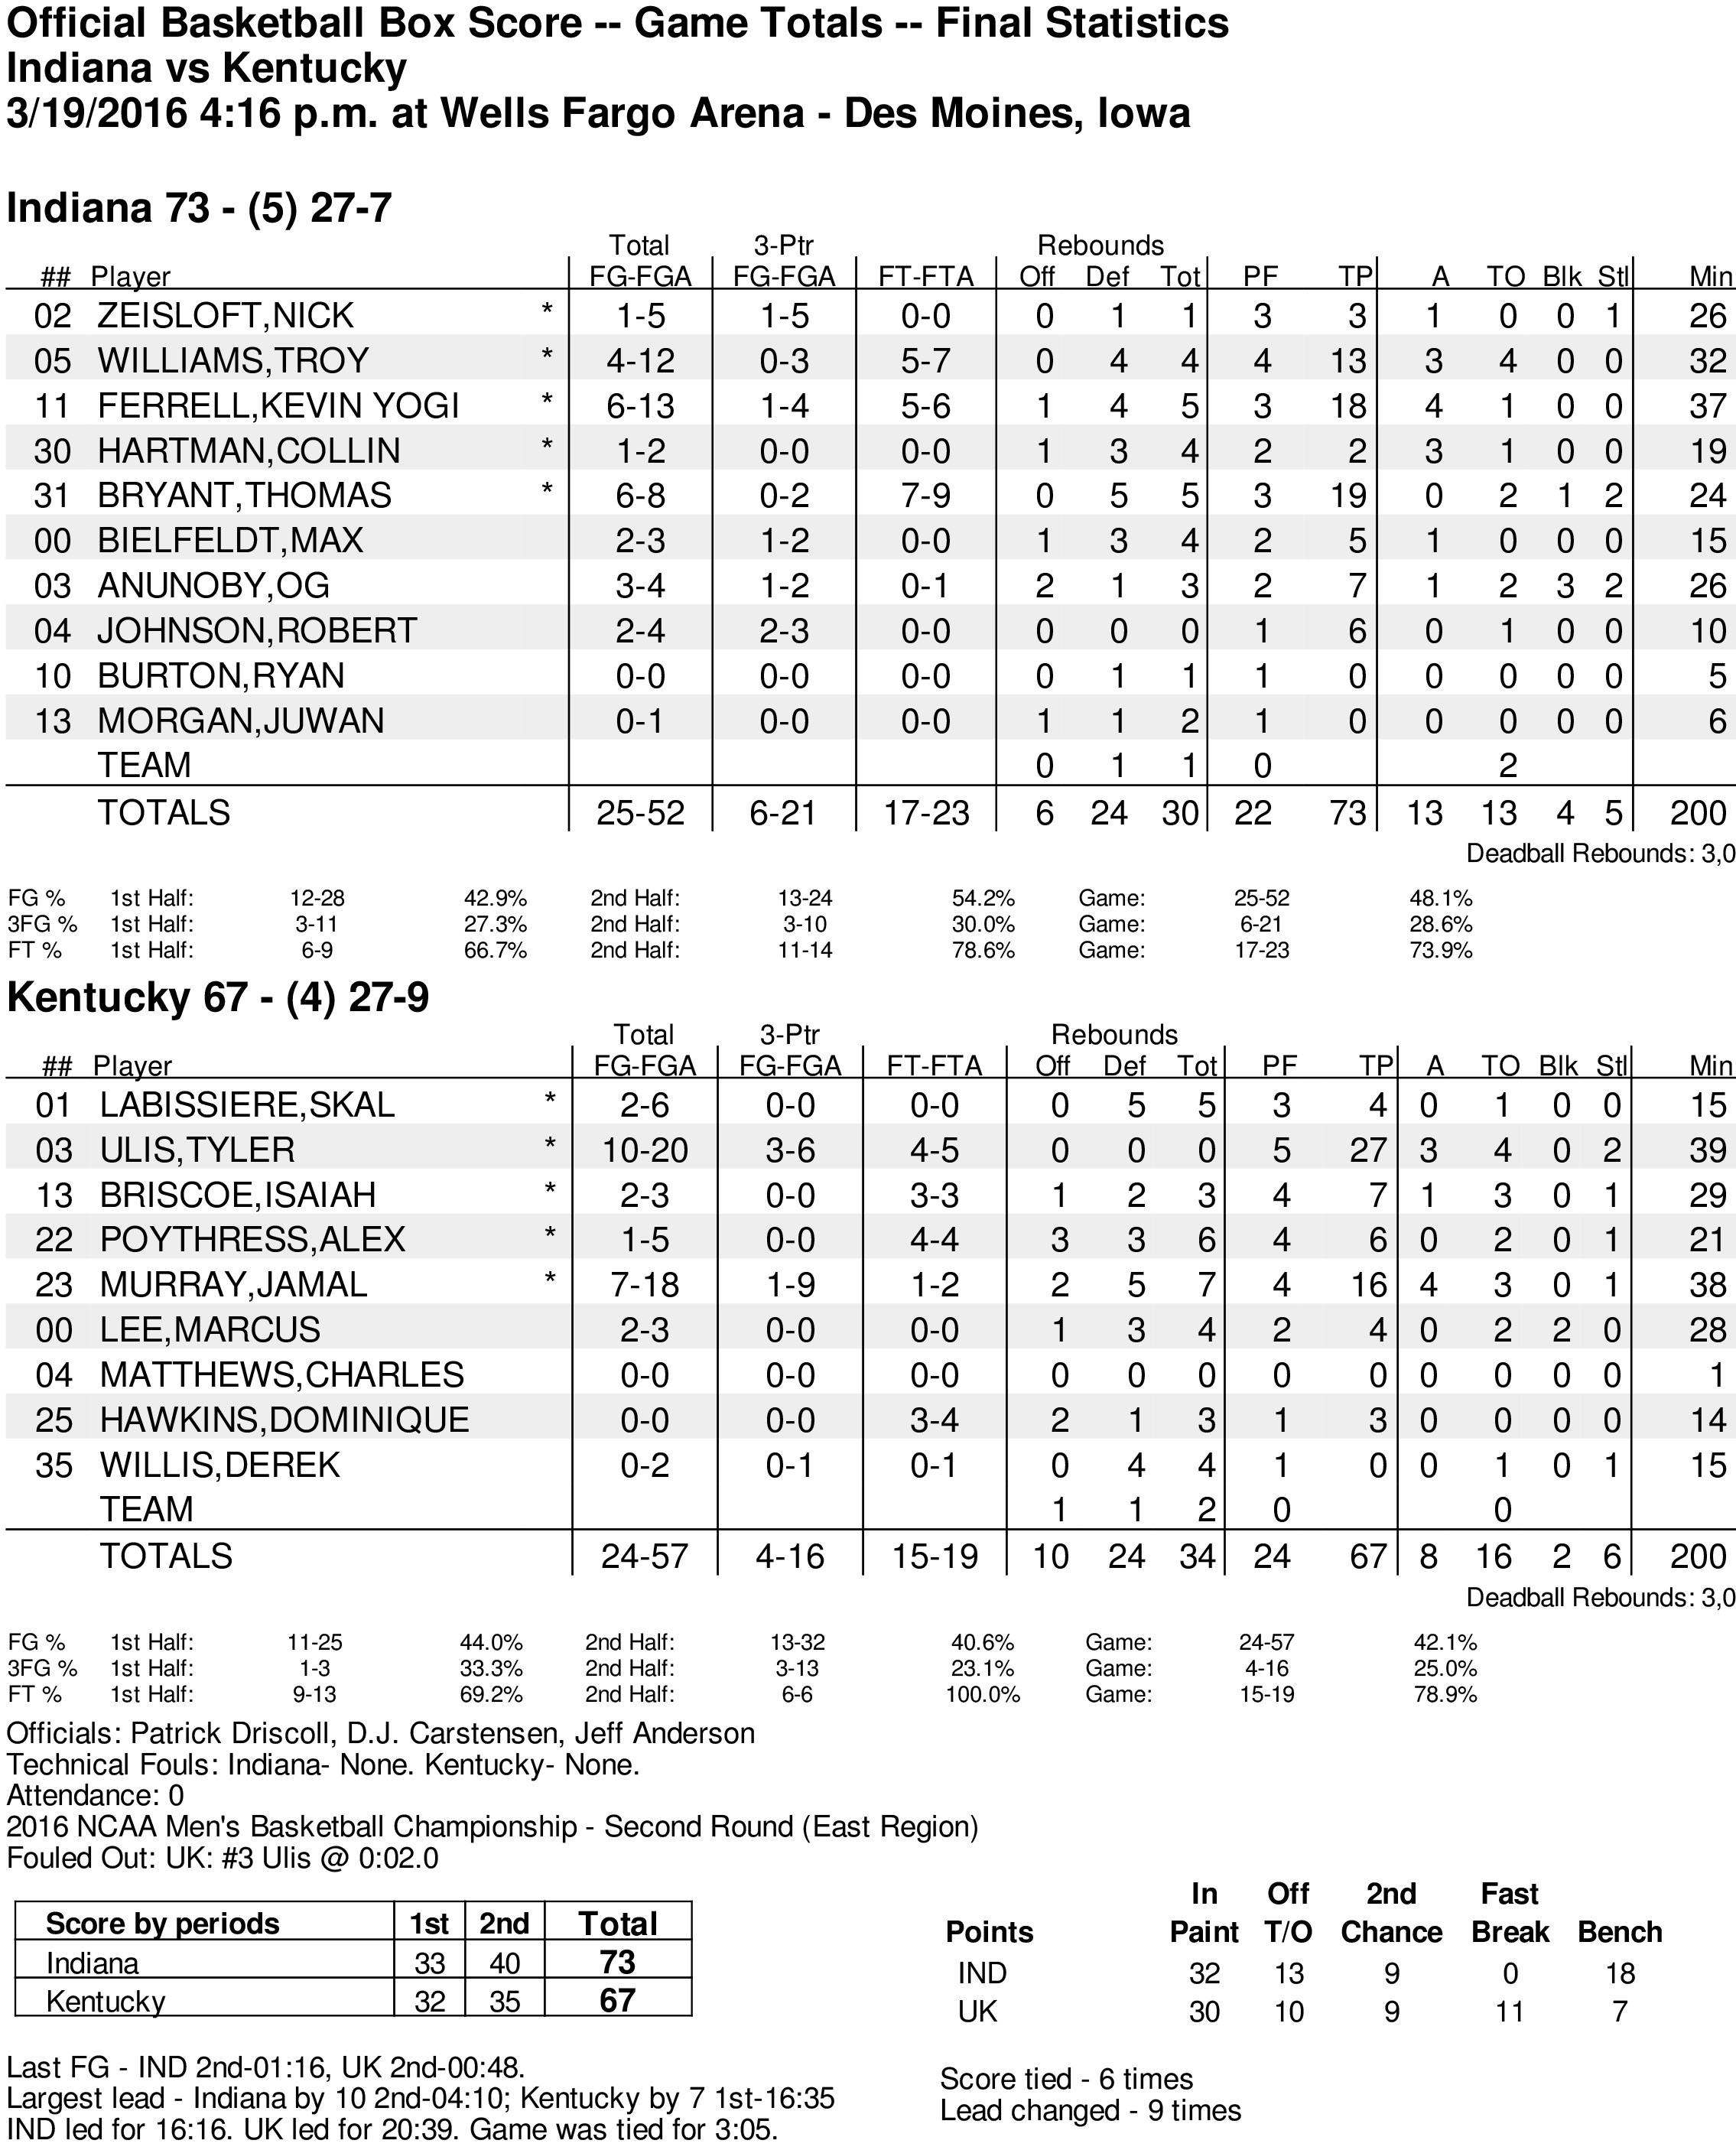 IU beats Kentucky stats